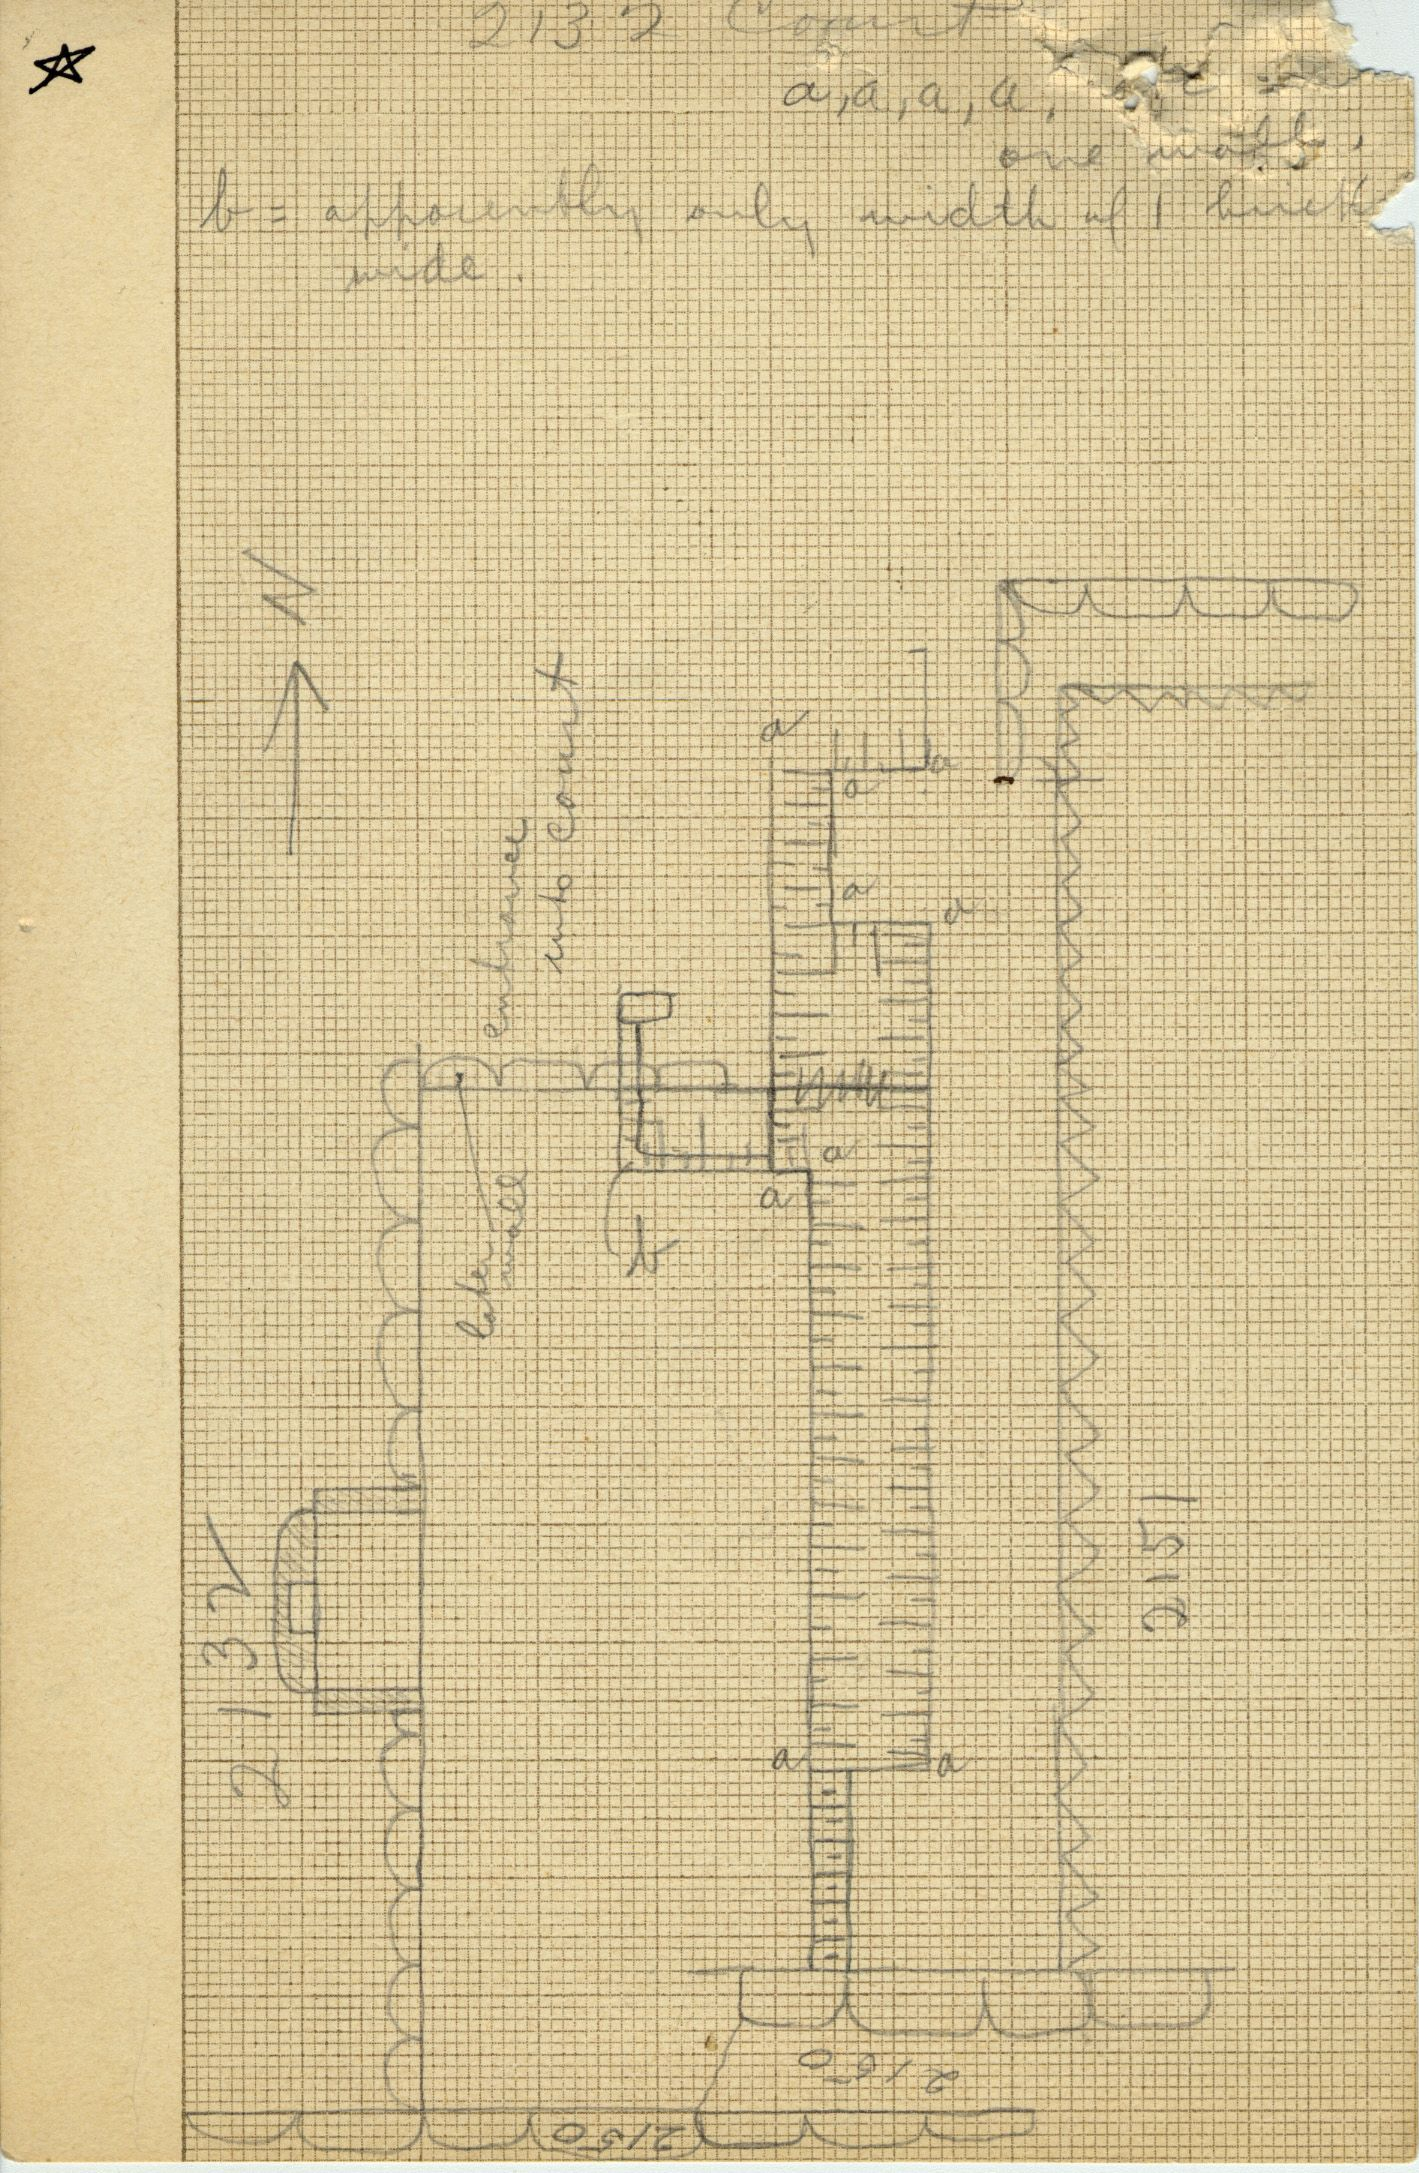 Maps and plans: G 2132, Court